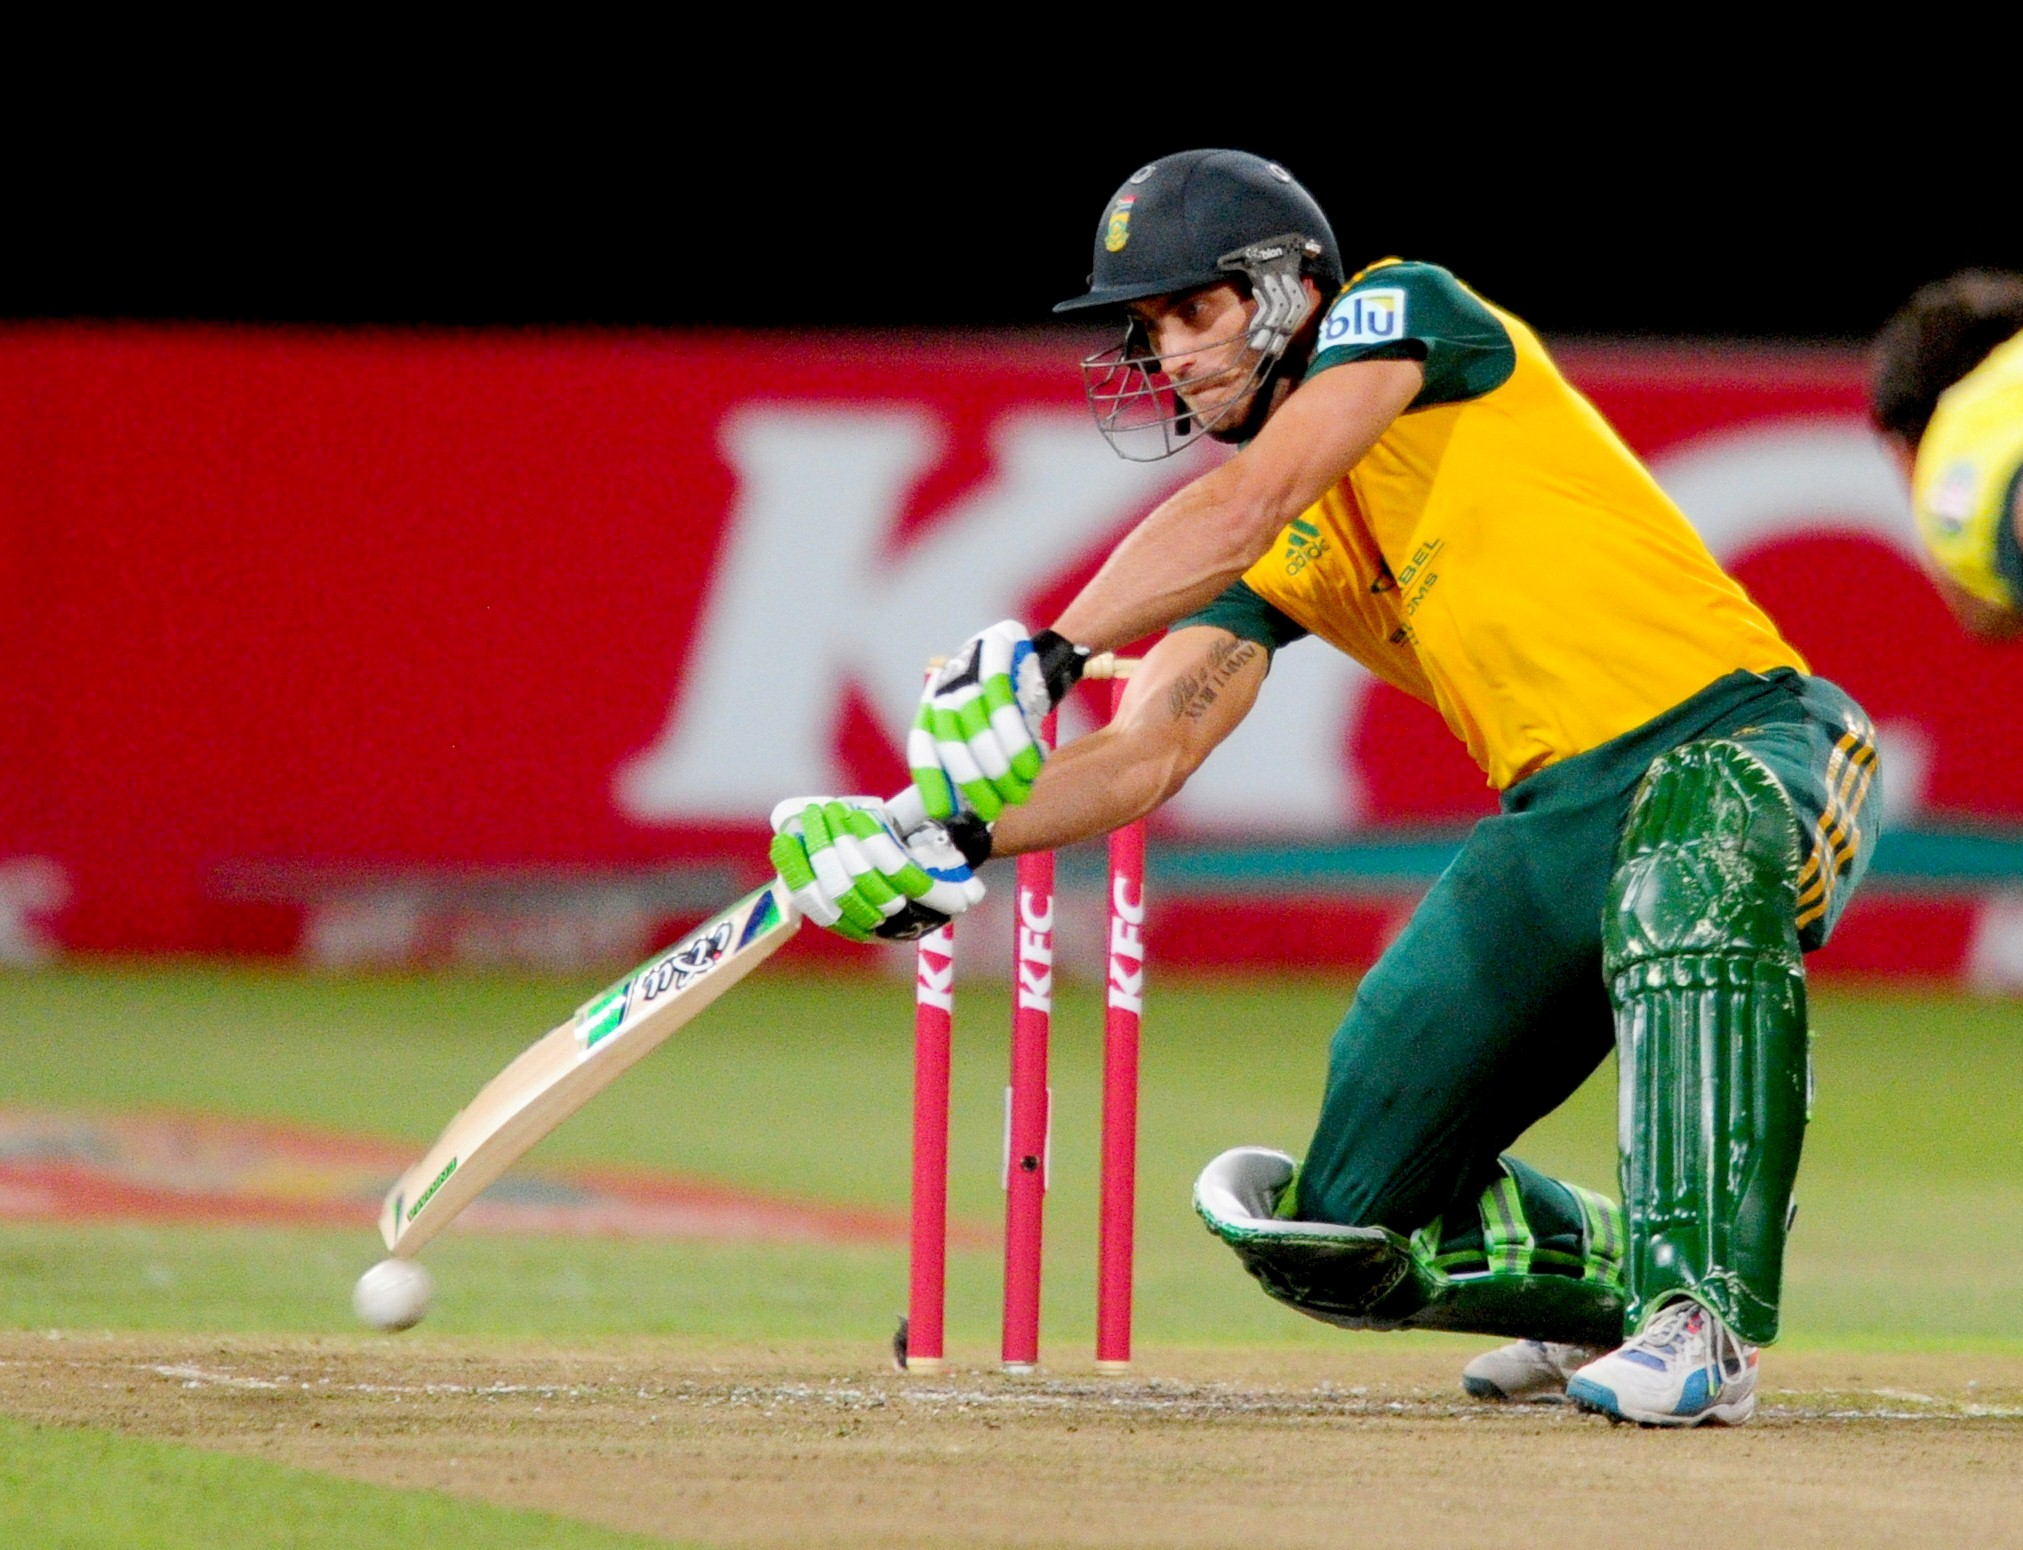 Faf du Plessis HD Wallpapers Images Pictures Photos Download 2023x1550